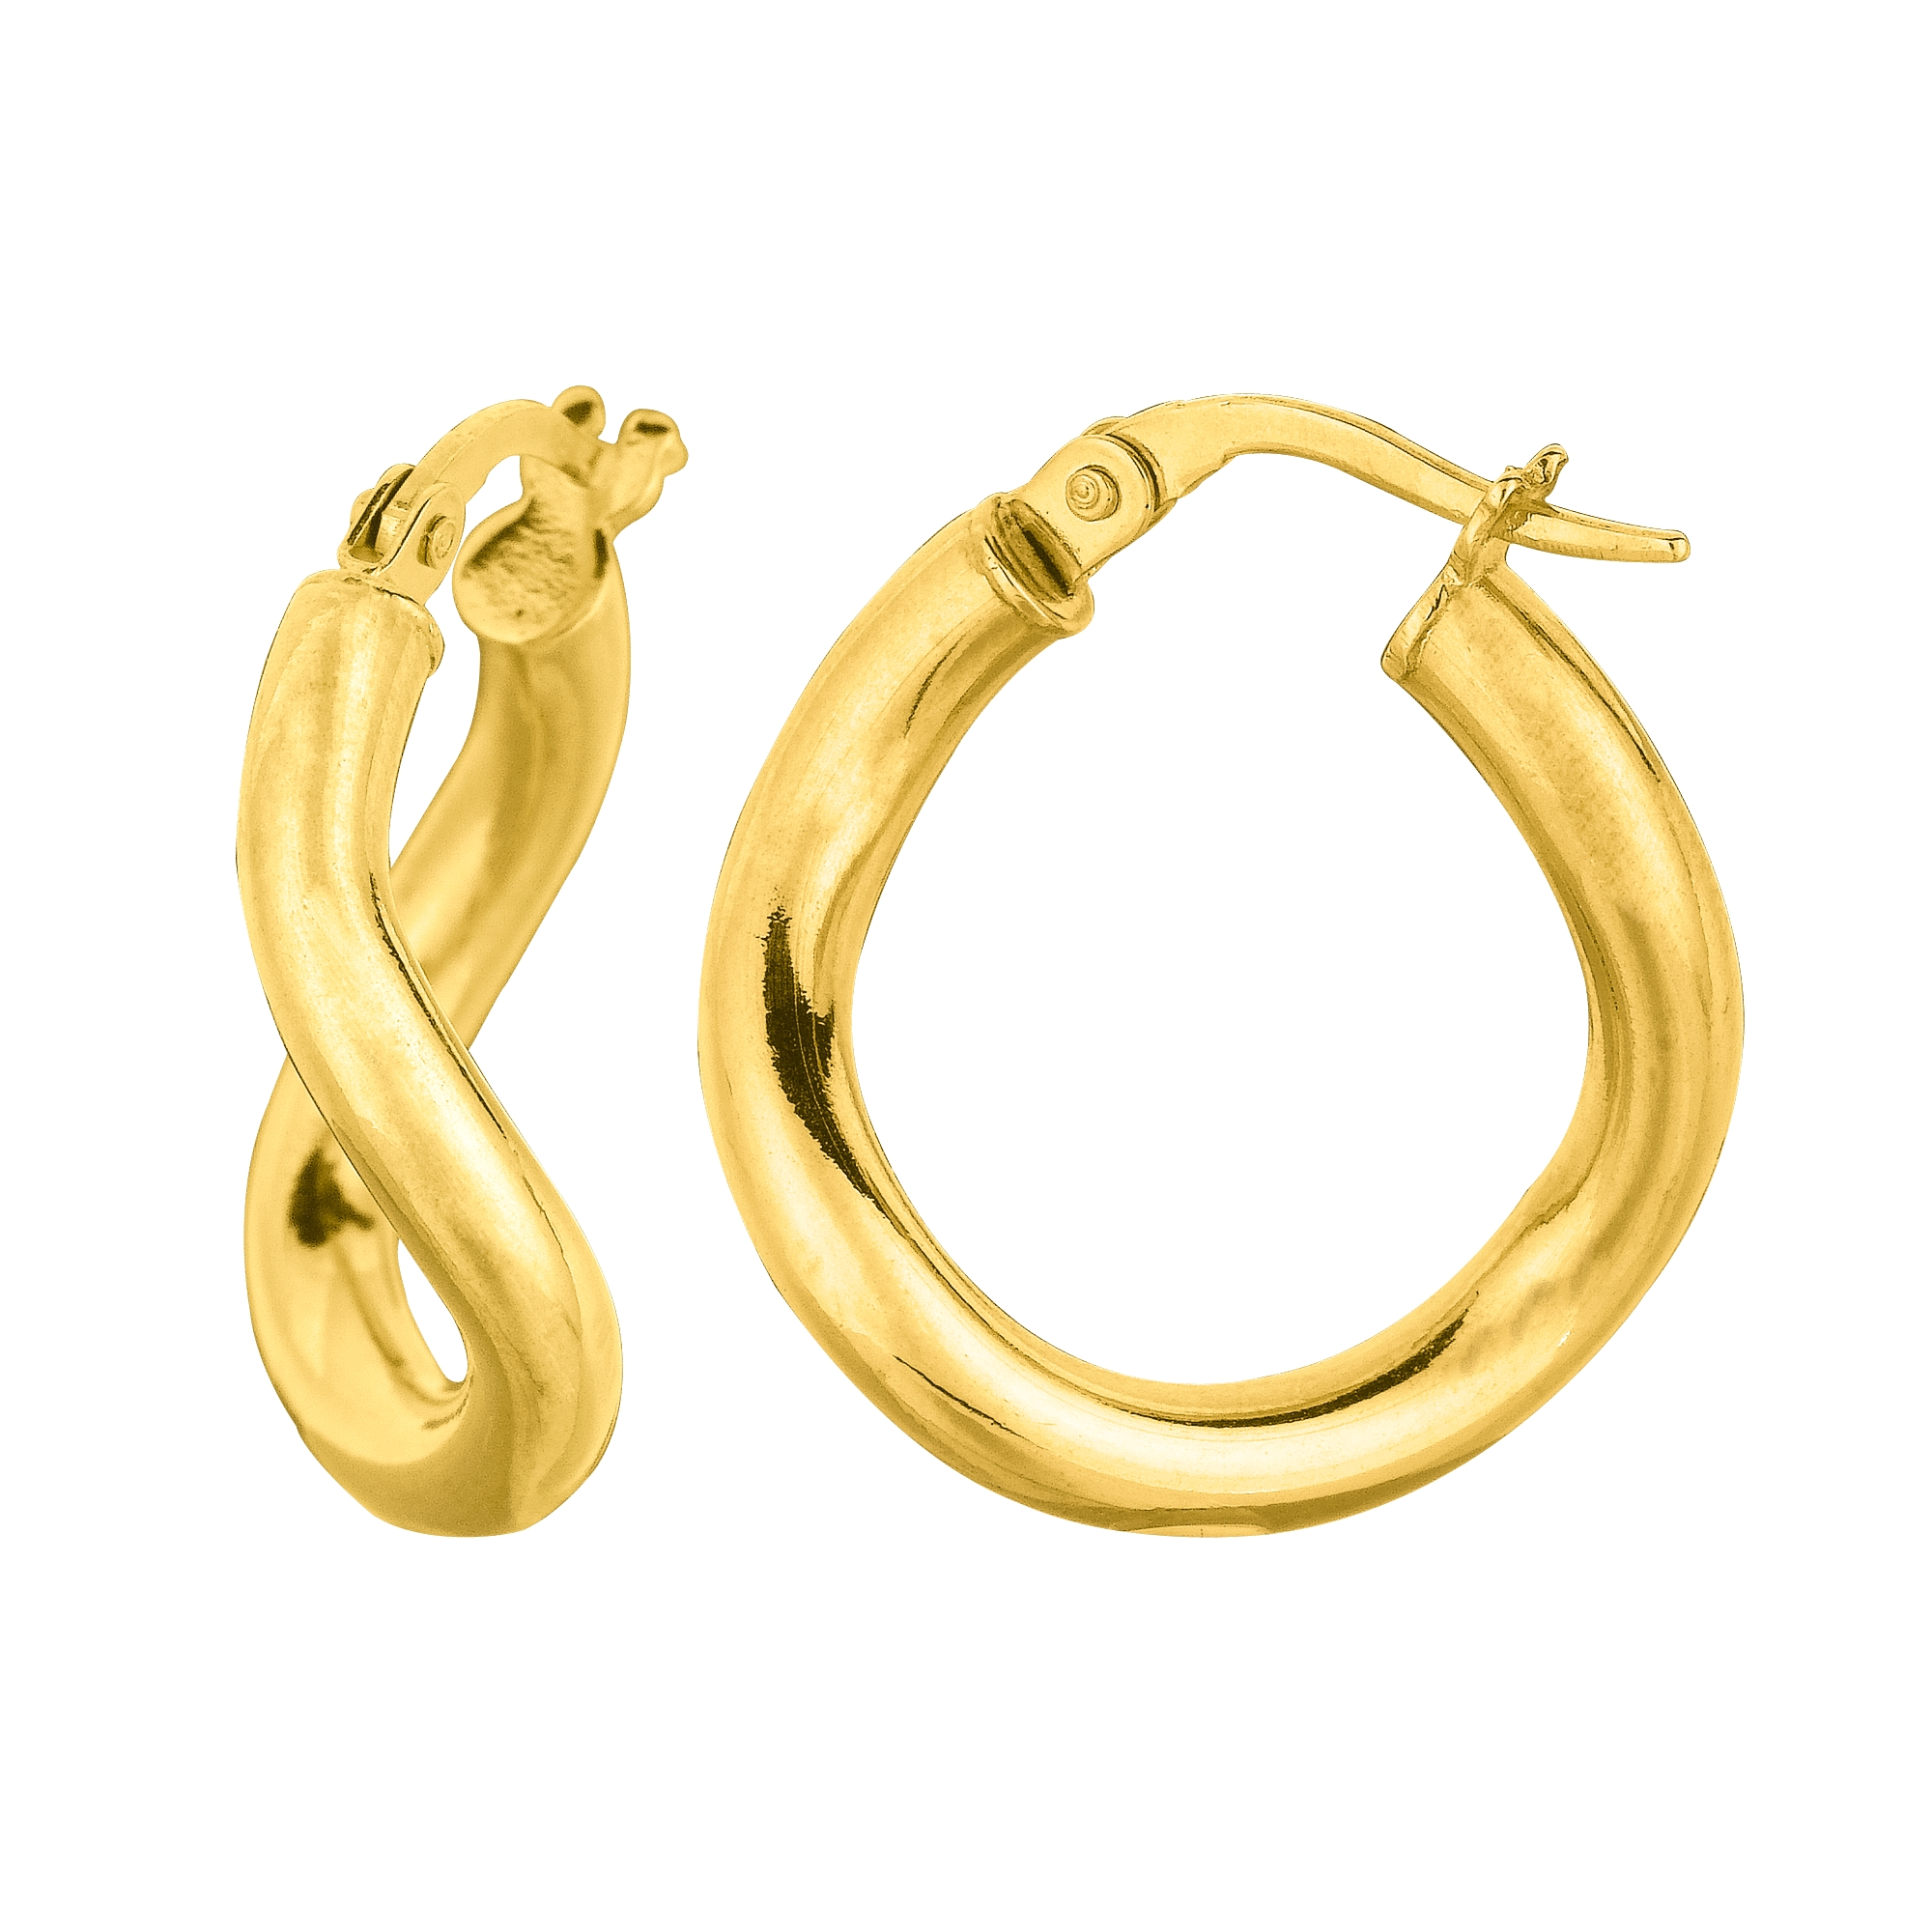 14K Yellow Gold Wavy Round Hoop Earrings, 10mm Complete your jewelry collection with a gorgeous pair of 14K endless earrings. These earrings have a secure snap post clasp making them easy to wear and remove. Earrings come in a  gift box making them ready to be gifted.